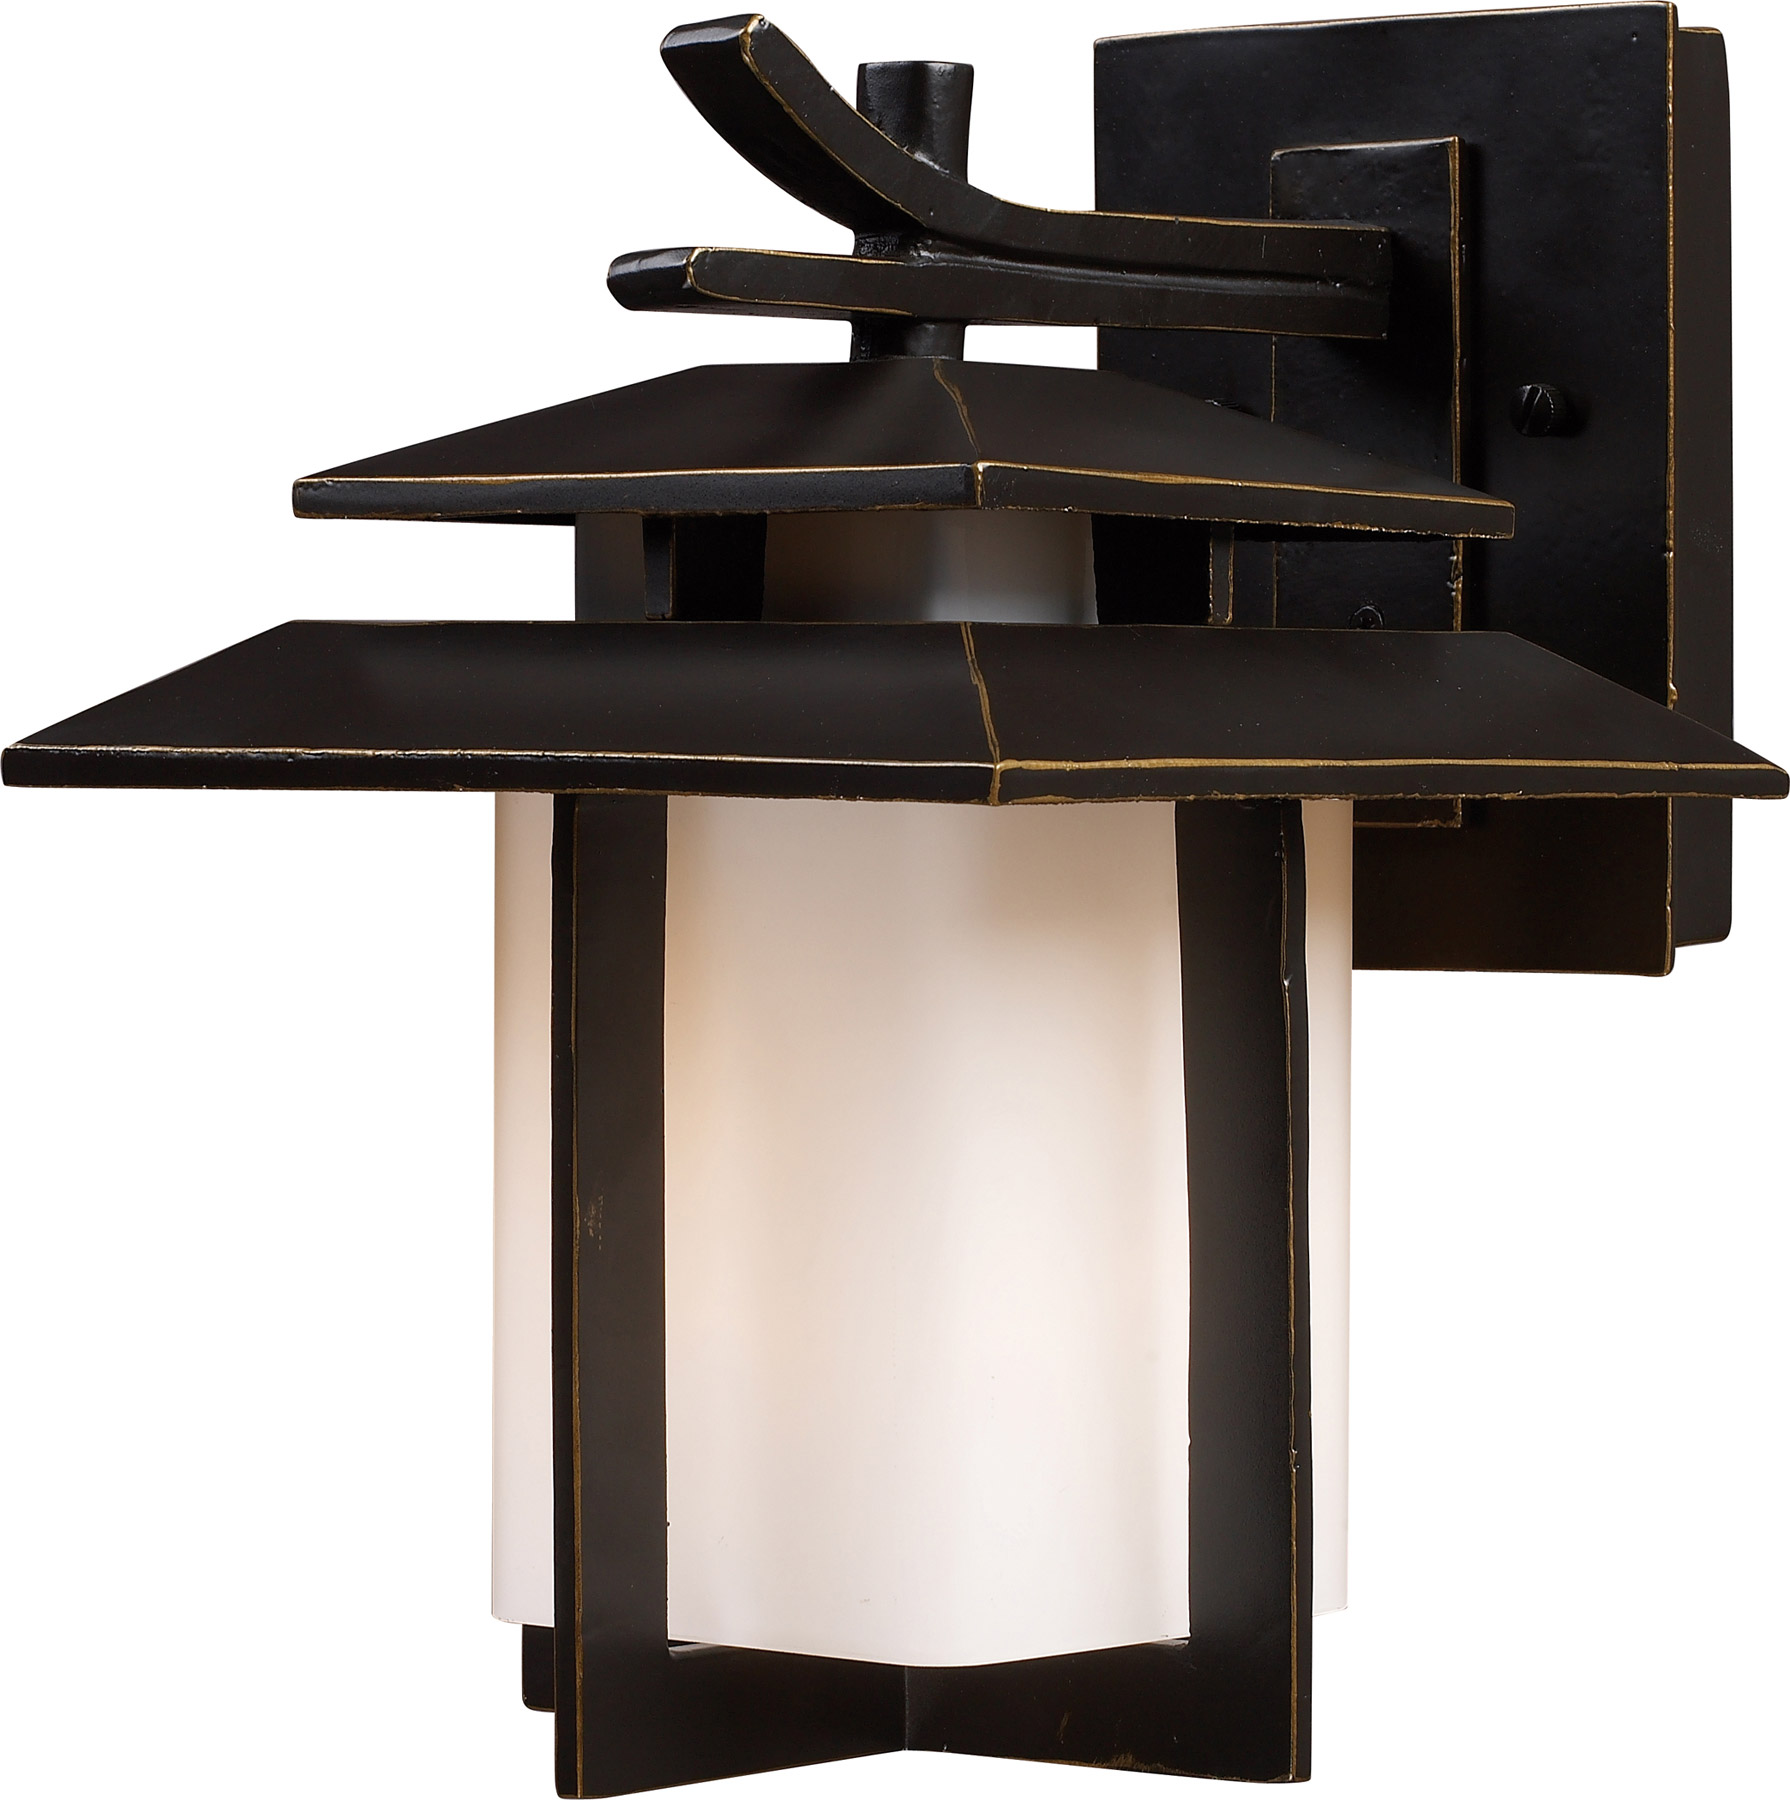 Lighting 421701 kanso outdoor wall mount lantern elk lighting 421701 kanso outdoor wall mount lantern aloadofball Image collections